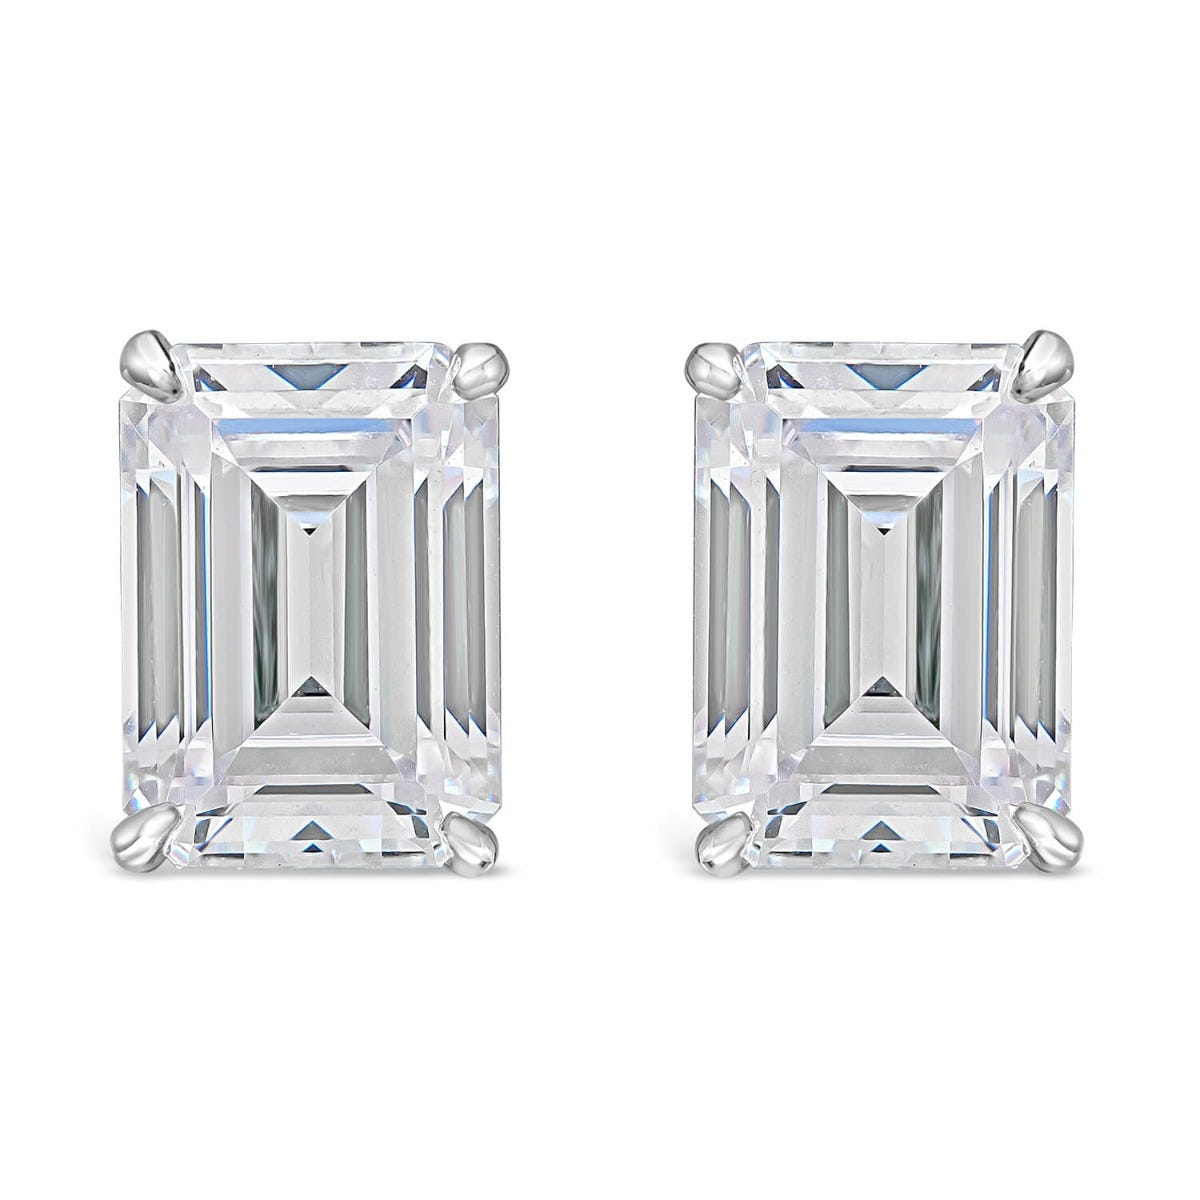 CARAT* London 9ct White Gold Emerald Cut Stud Earrings